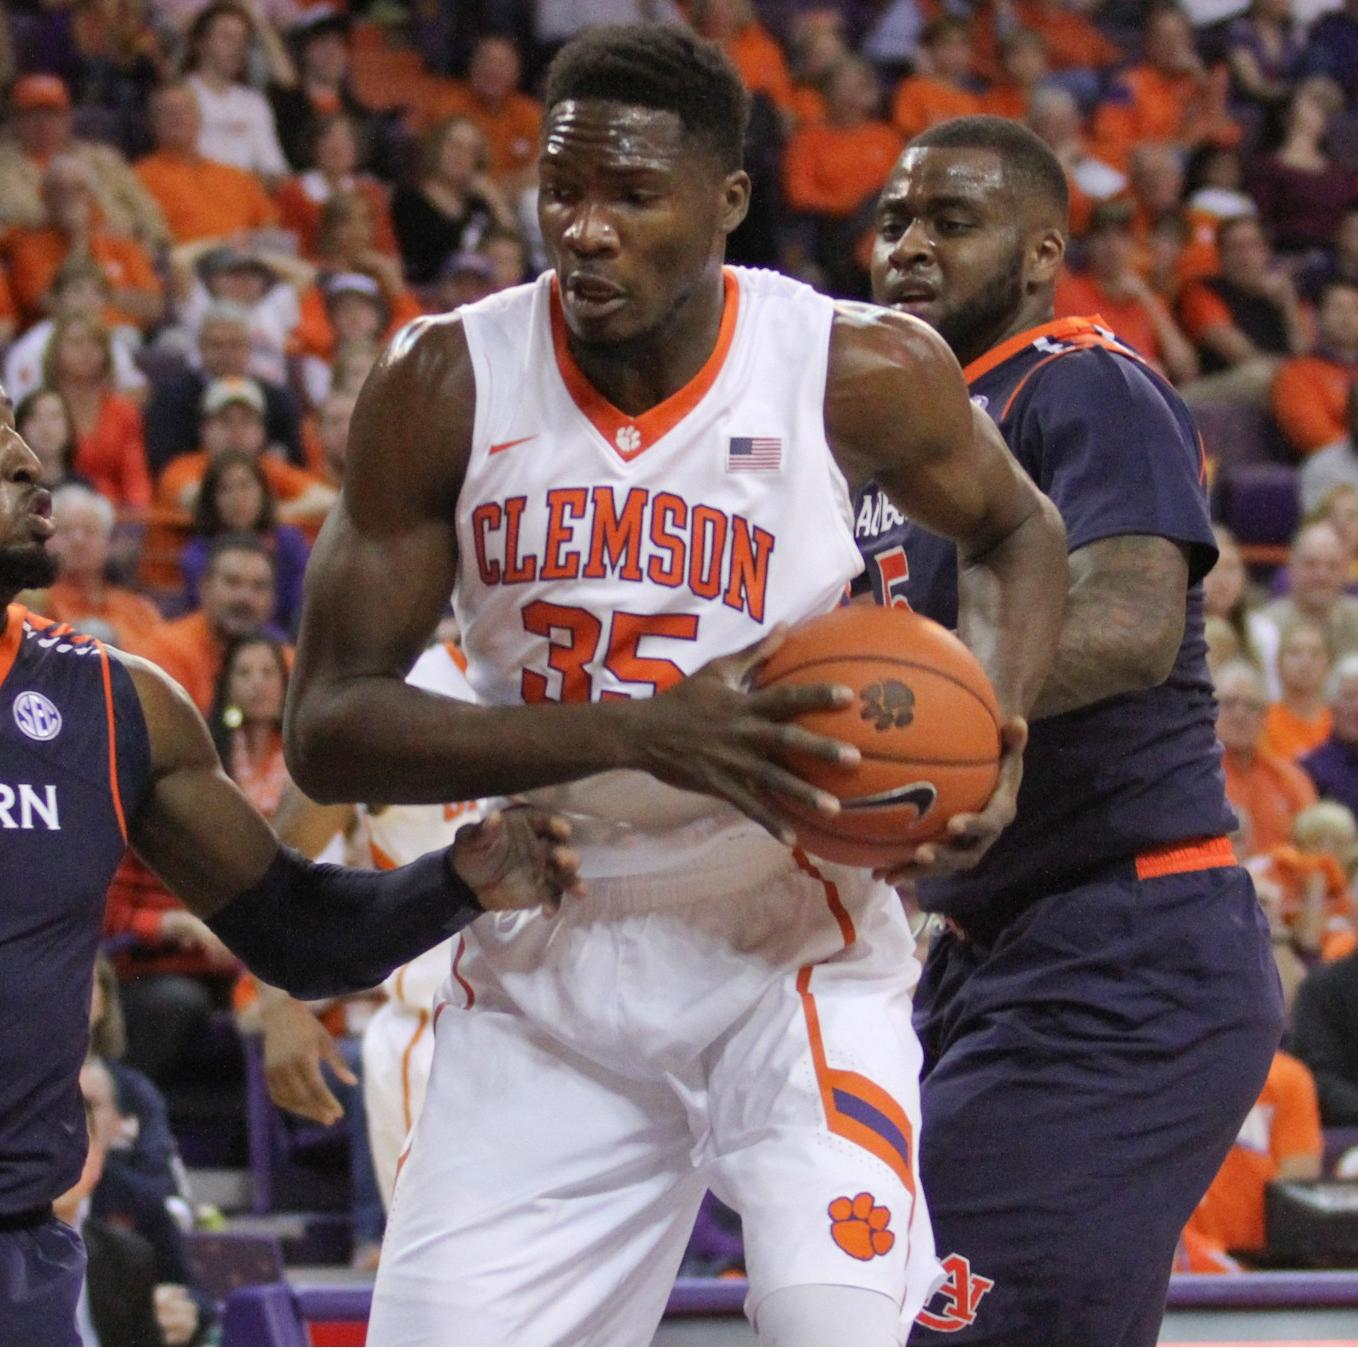 Tigers Take on No. 5 Louisville Wednesday